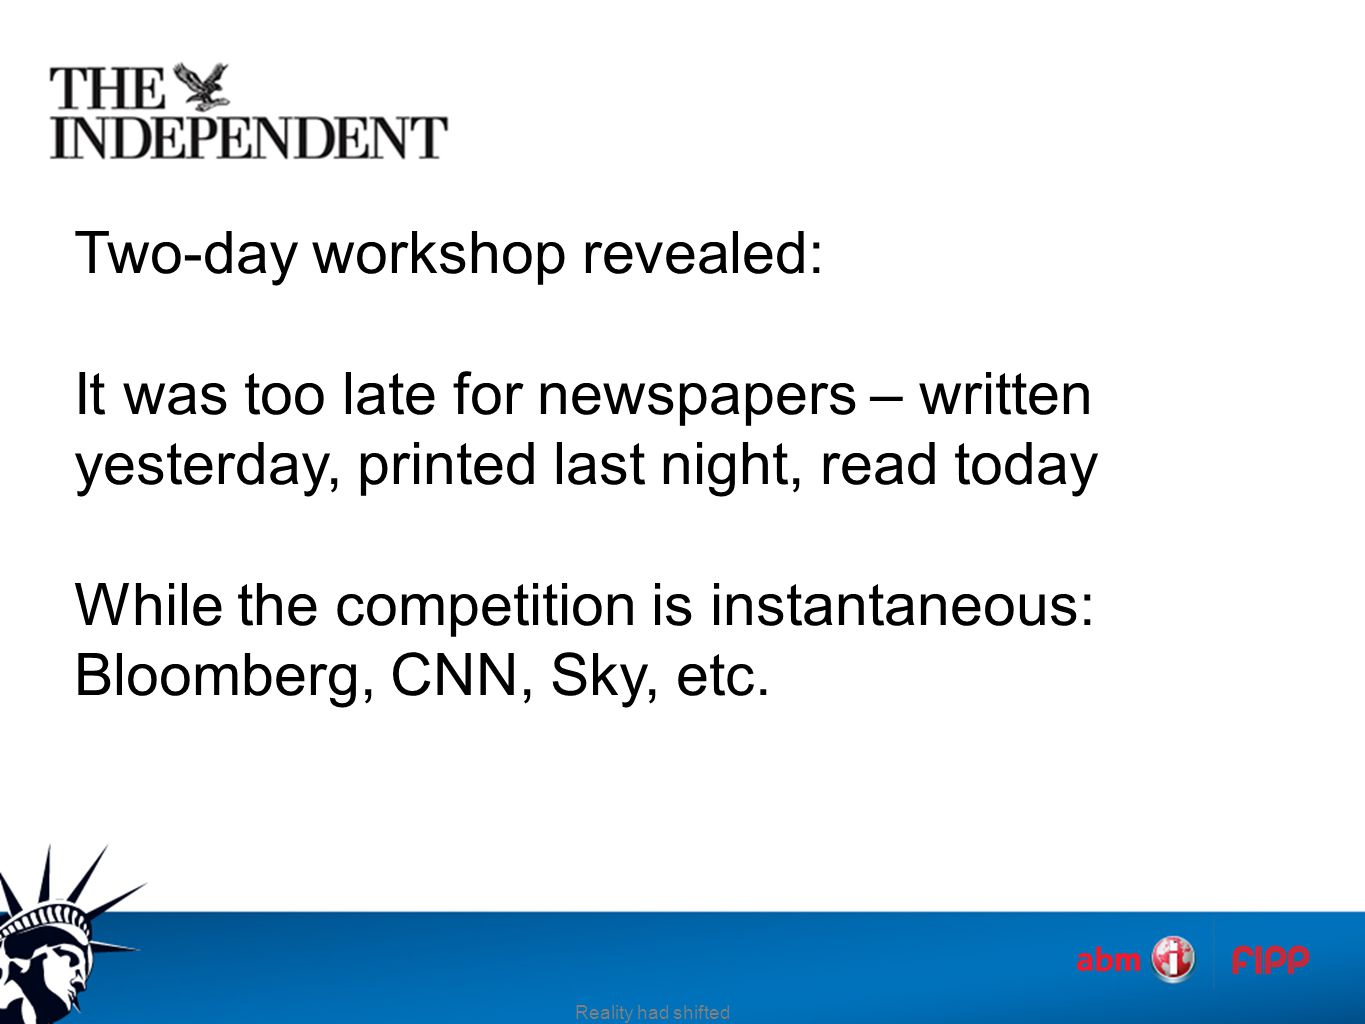 Two-day workshop revealed: It was too late for newspapers – written yesterday, printed last night, read today While the competition is instantaneous: Bloomberg, CNN, Sky, etc.